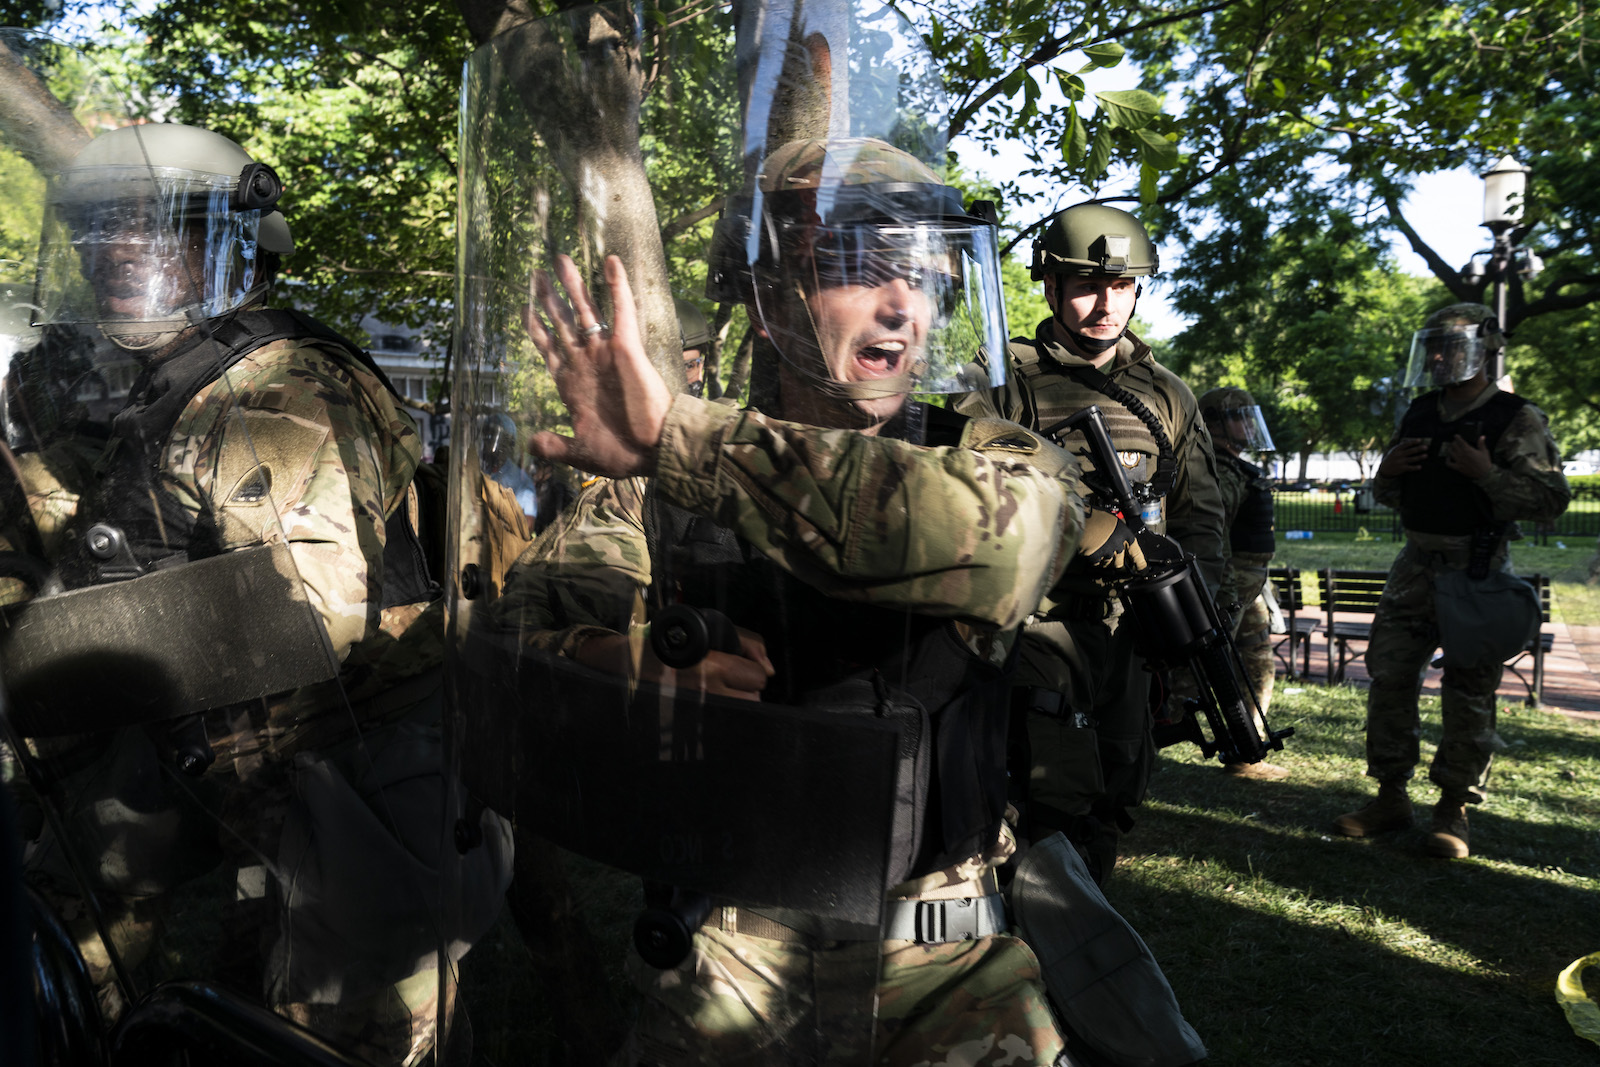 Troops gather during a demonstration on June 1, 2020 in Washington, DC. Photo: Joshua Roberts/Getty Images/AFP